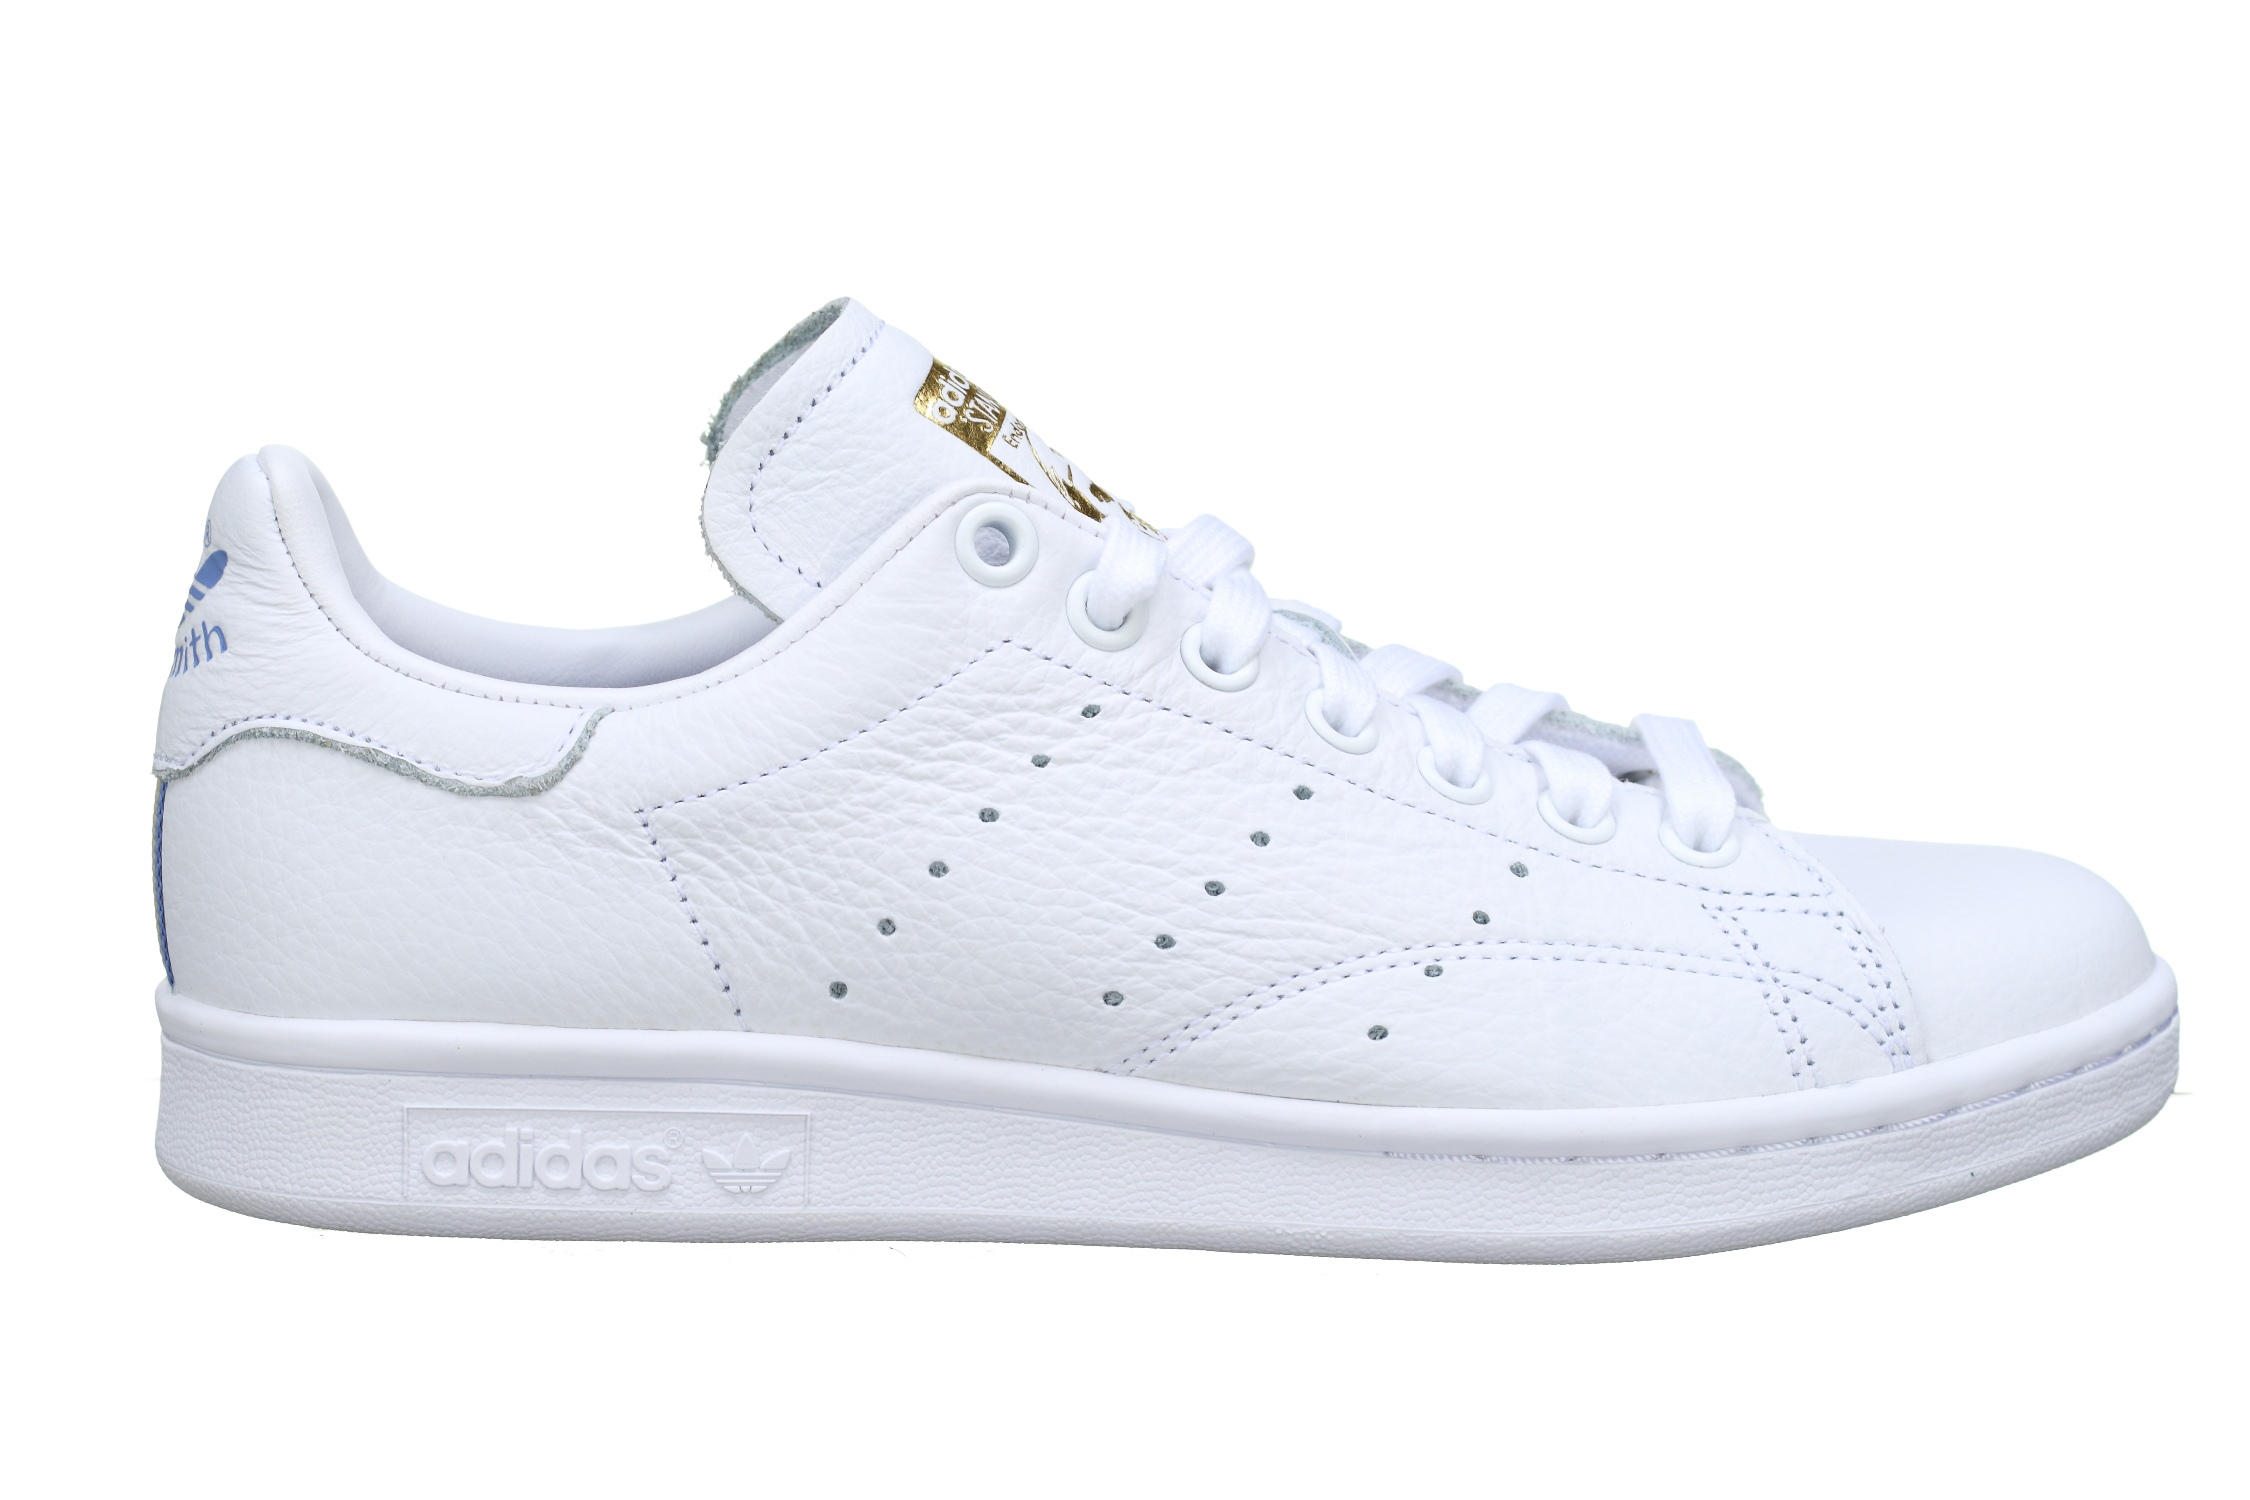 http://www.leadermode.com/165667/adidas-stan-smith-w-cg6014-blanc.jpg